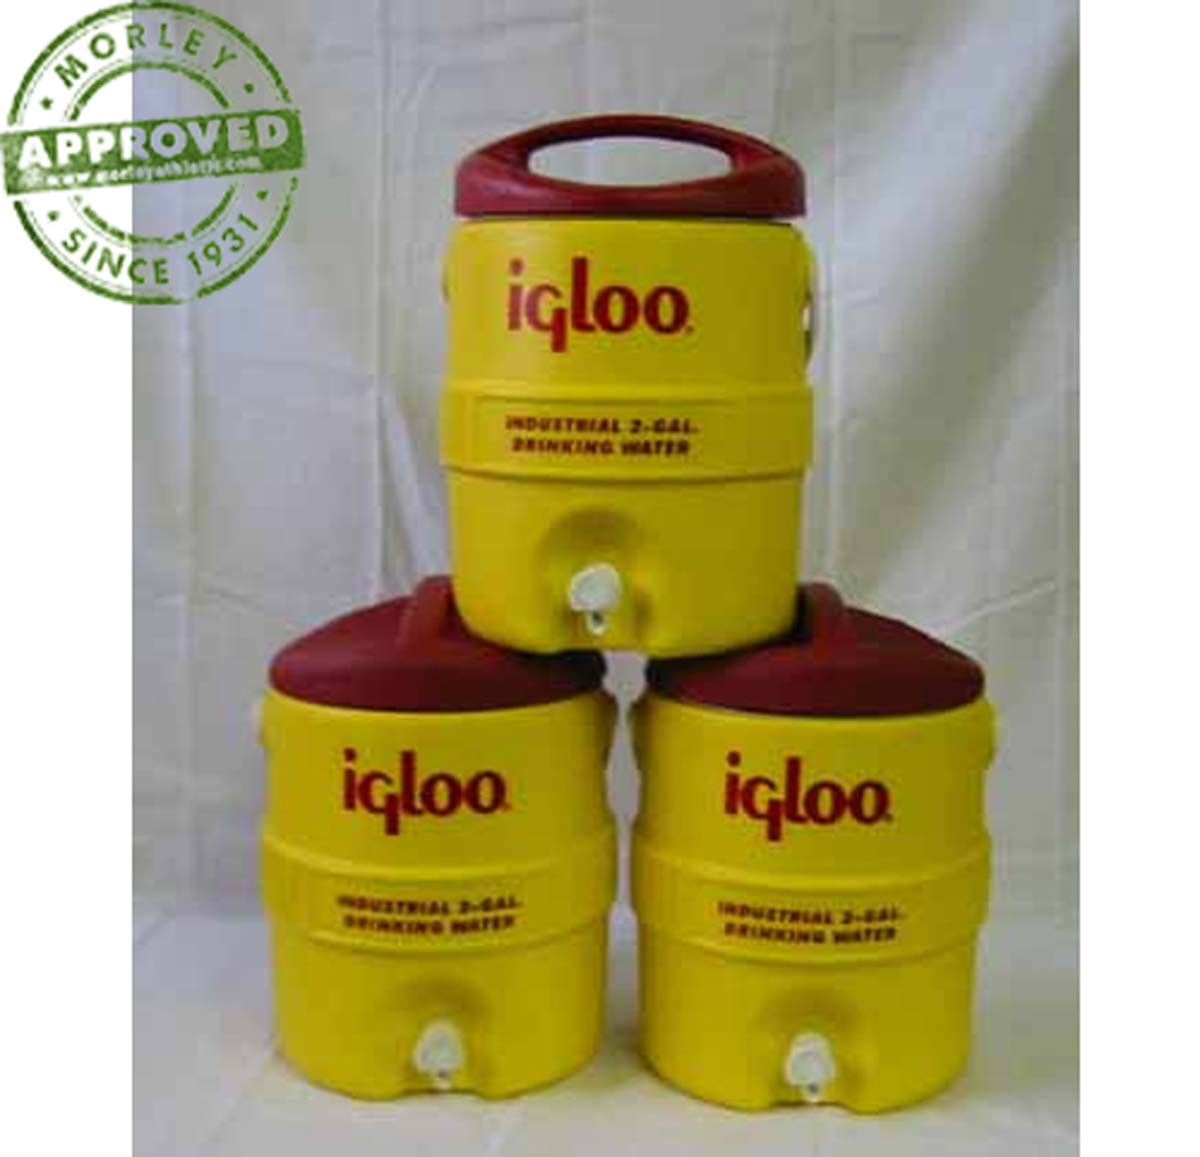 Igloo 3 Gallon Water Cooler 1 Source For Hydration